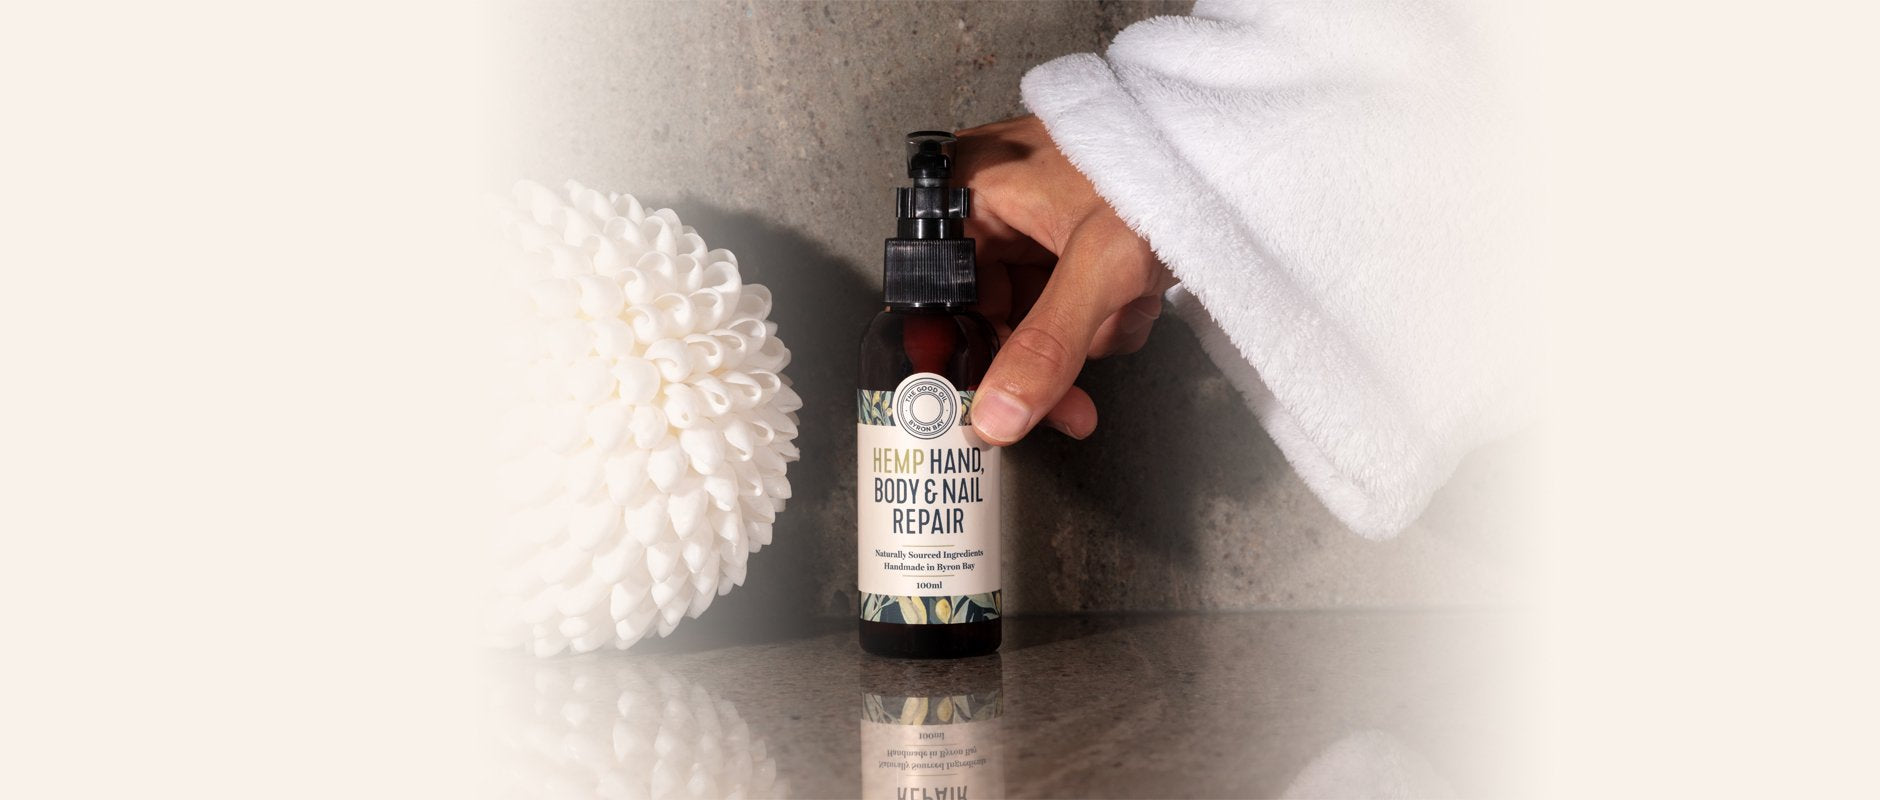 The Good Oil Hemp Hand & Body Lotion